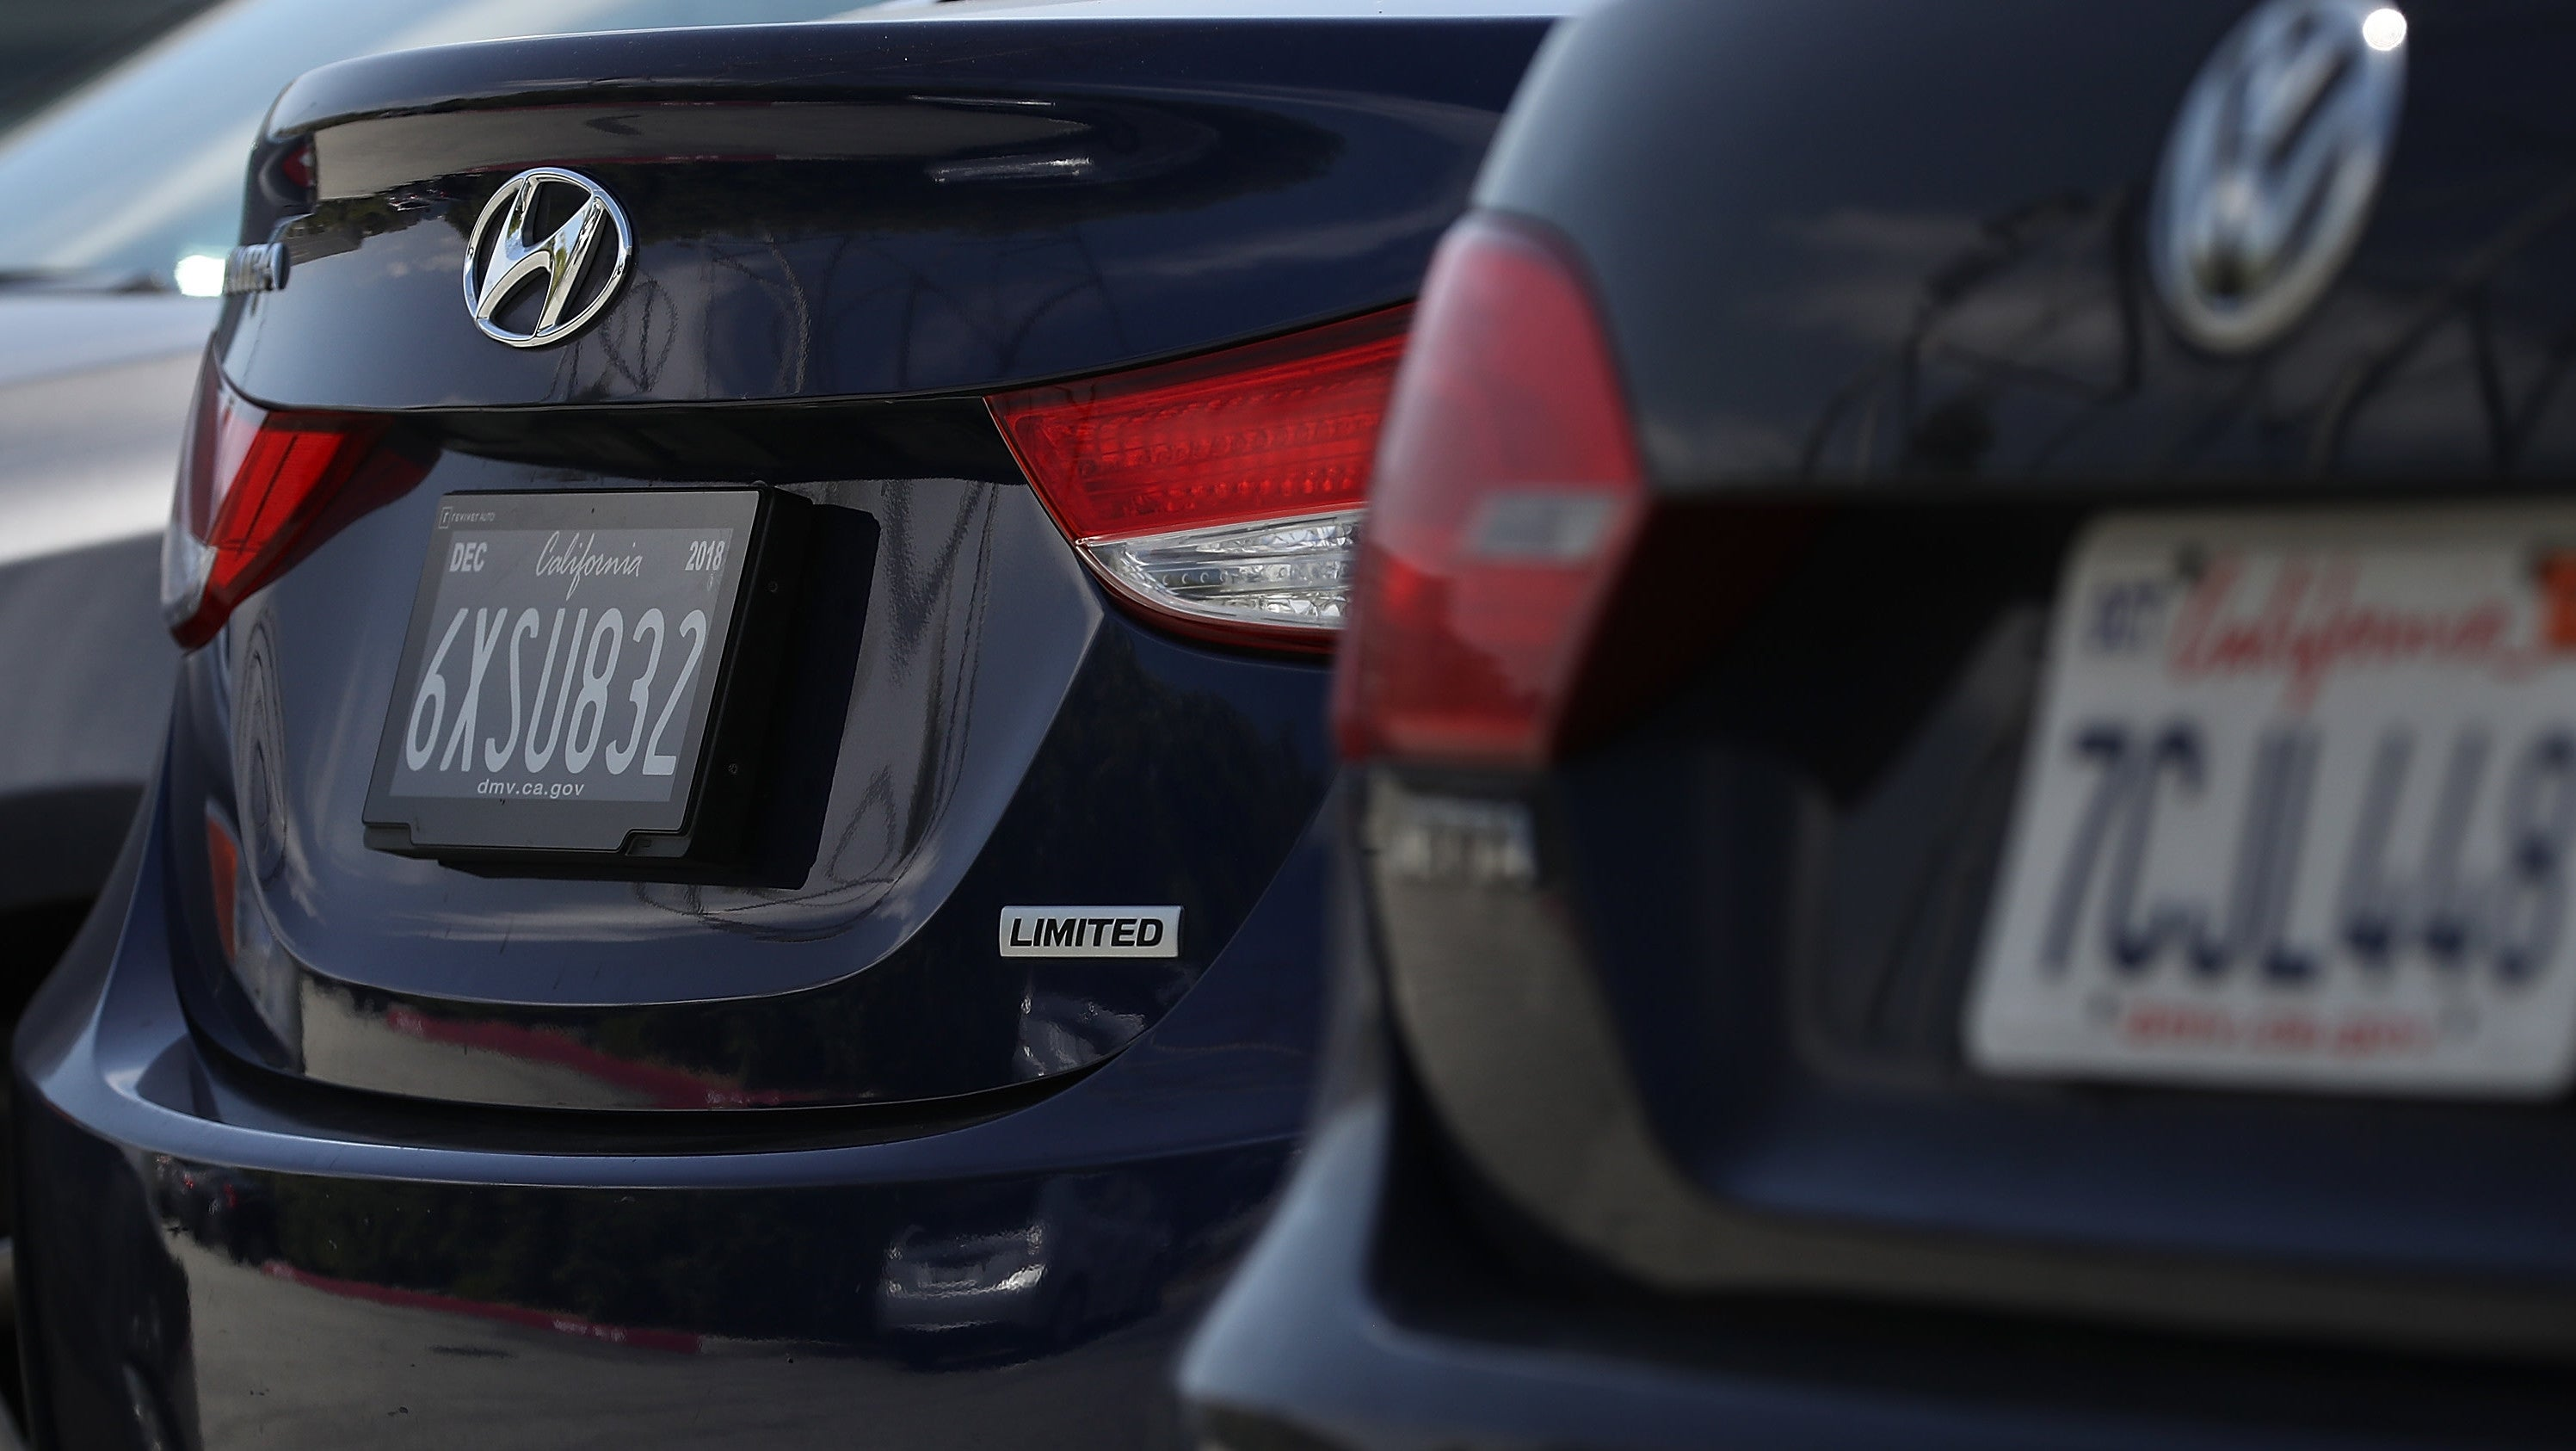 Security Researcher's 'NULL' Vanity Plates Cause Glitch That Lands Him $12,000 In Parking Tickets